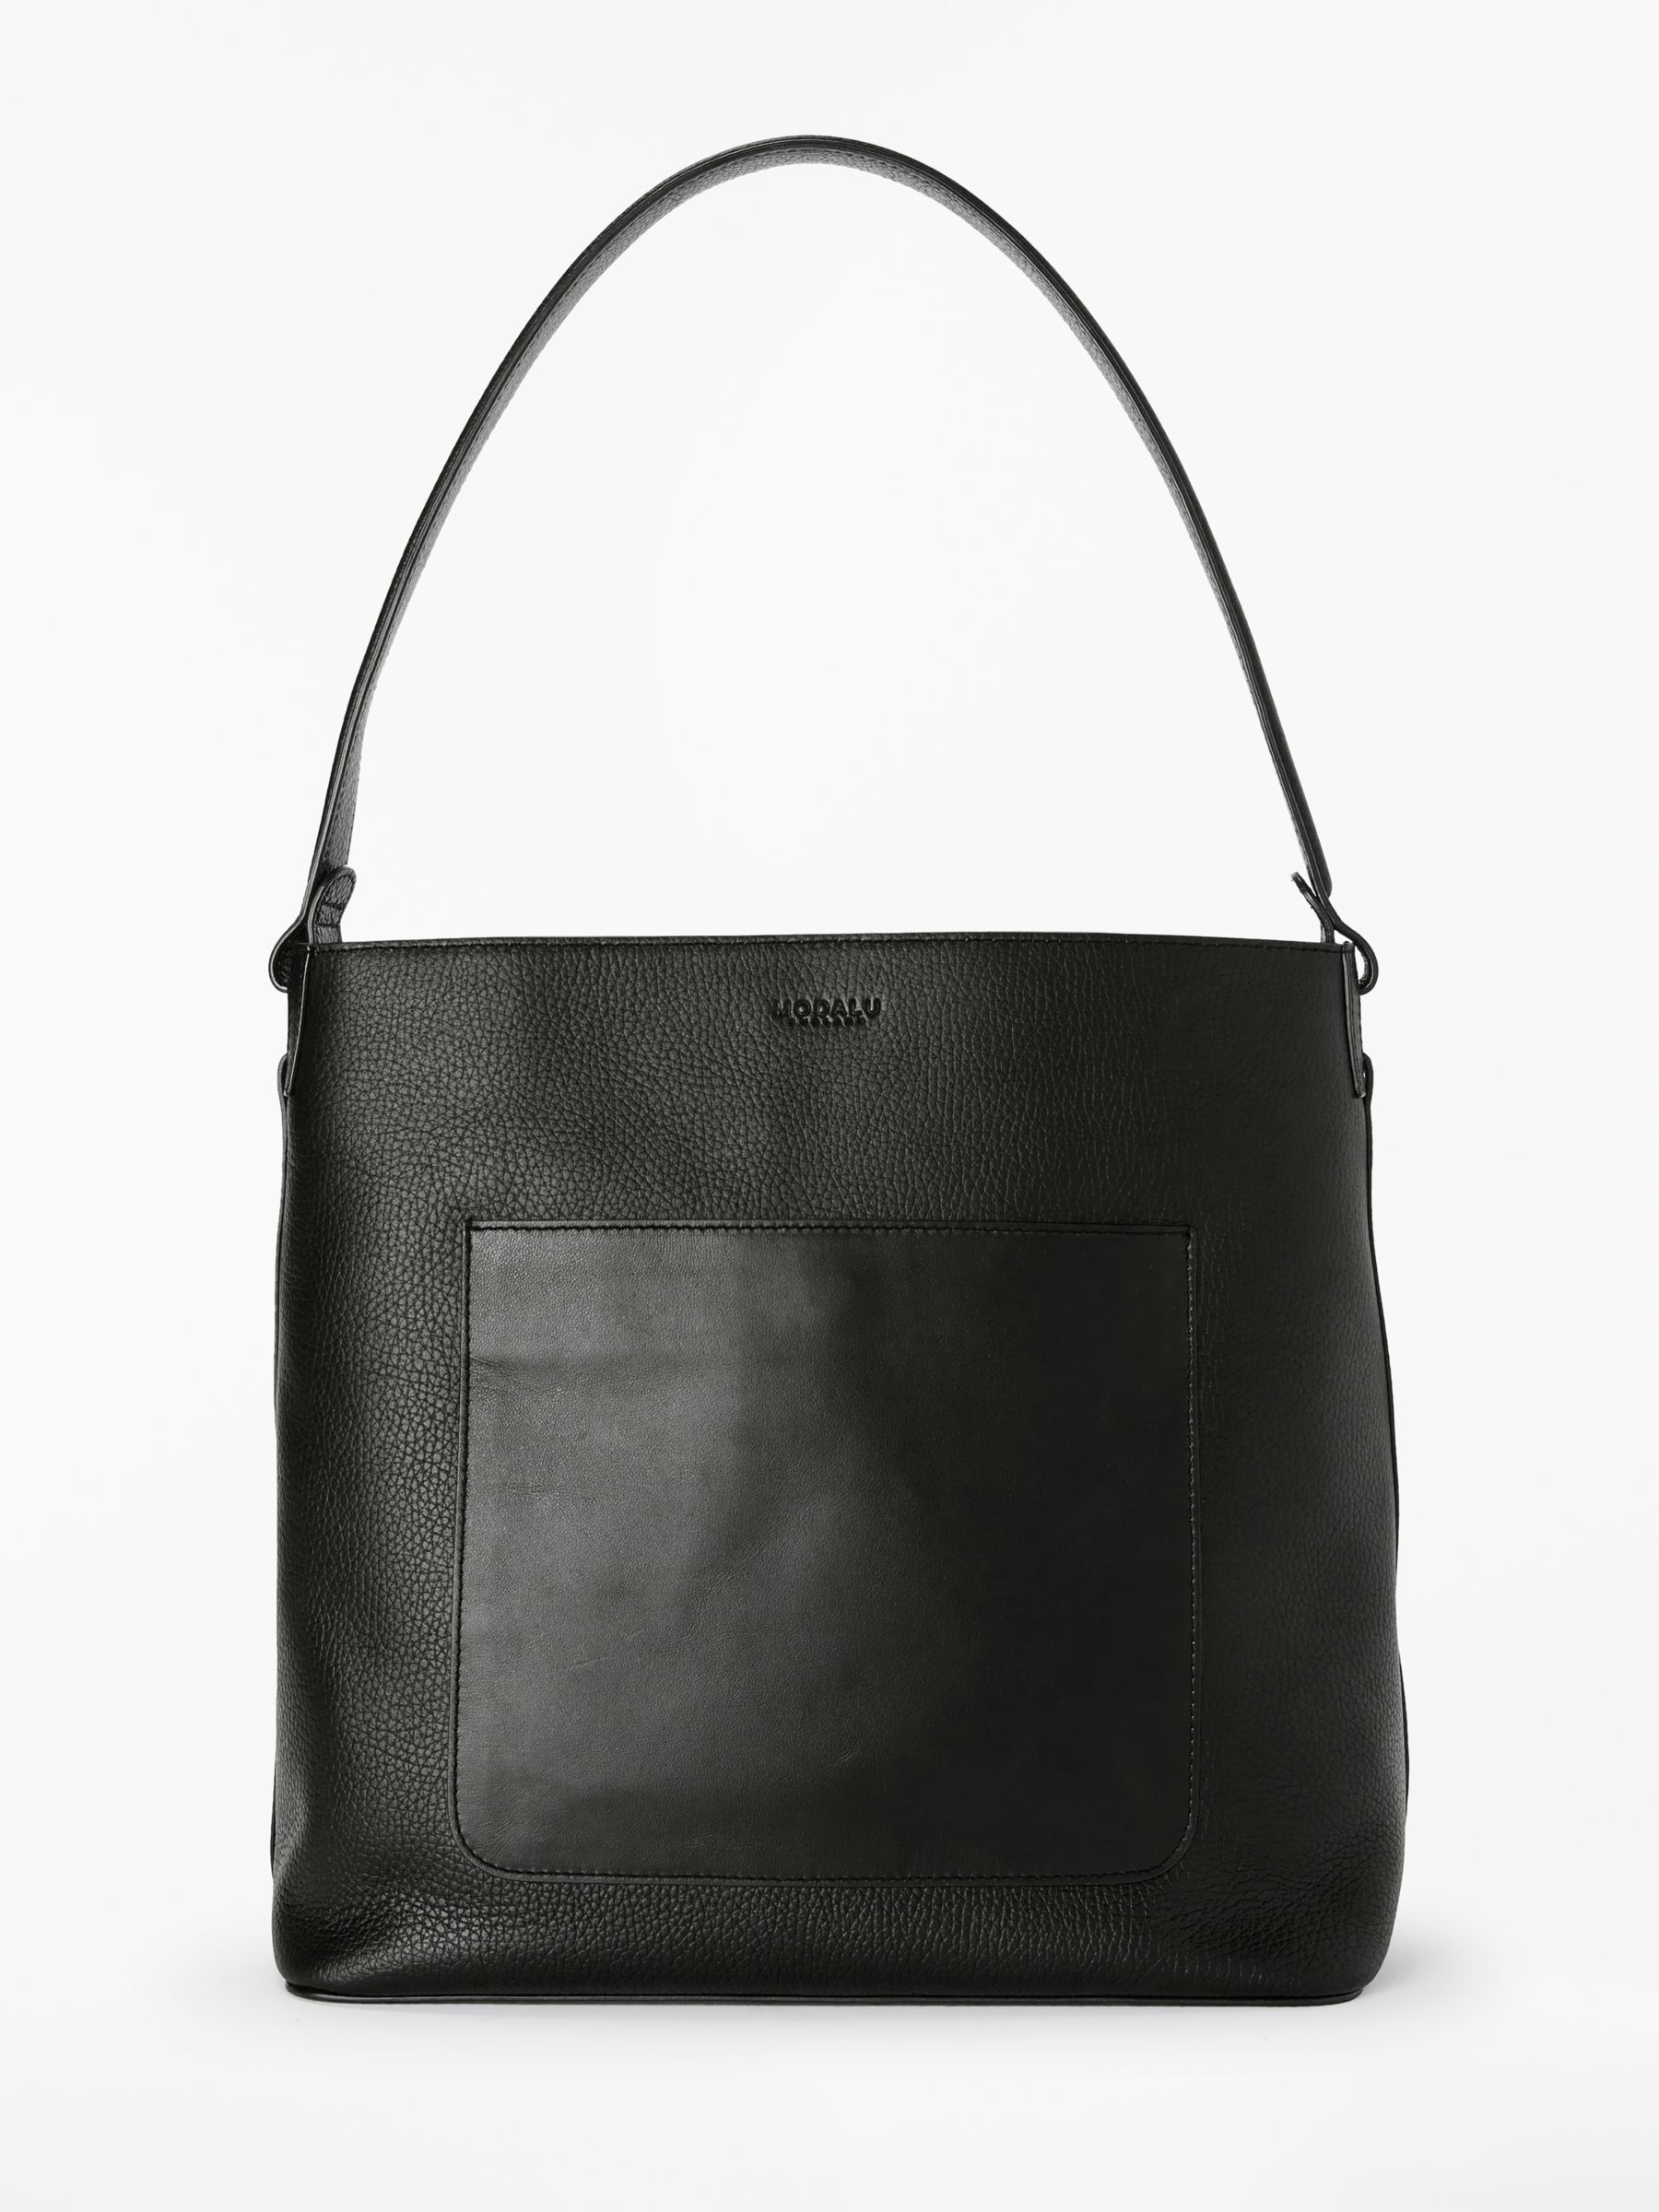 Modalu Modalu Imogen Leather Hobo Bag, Black